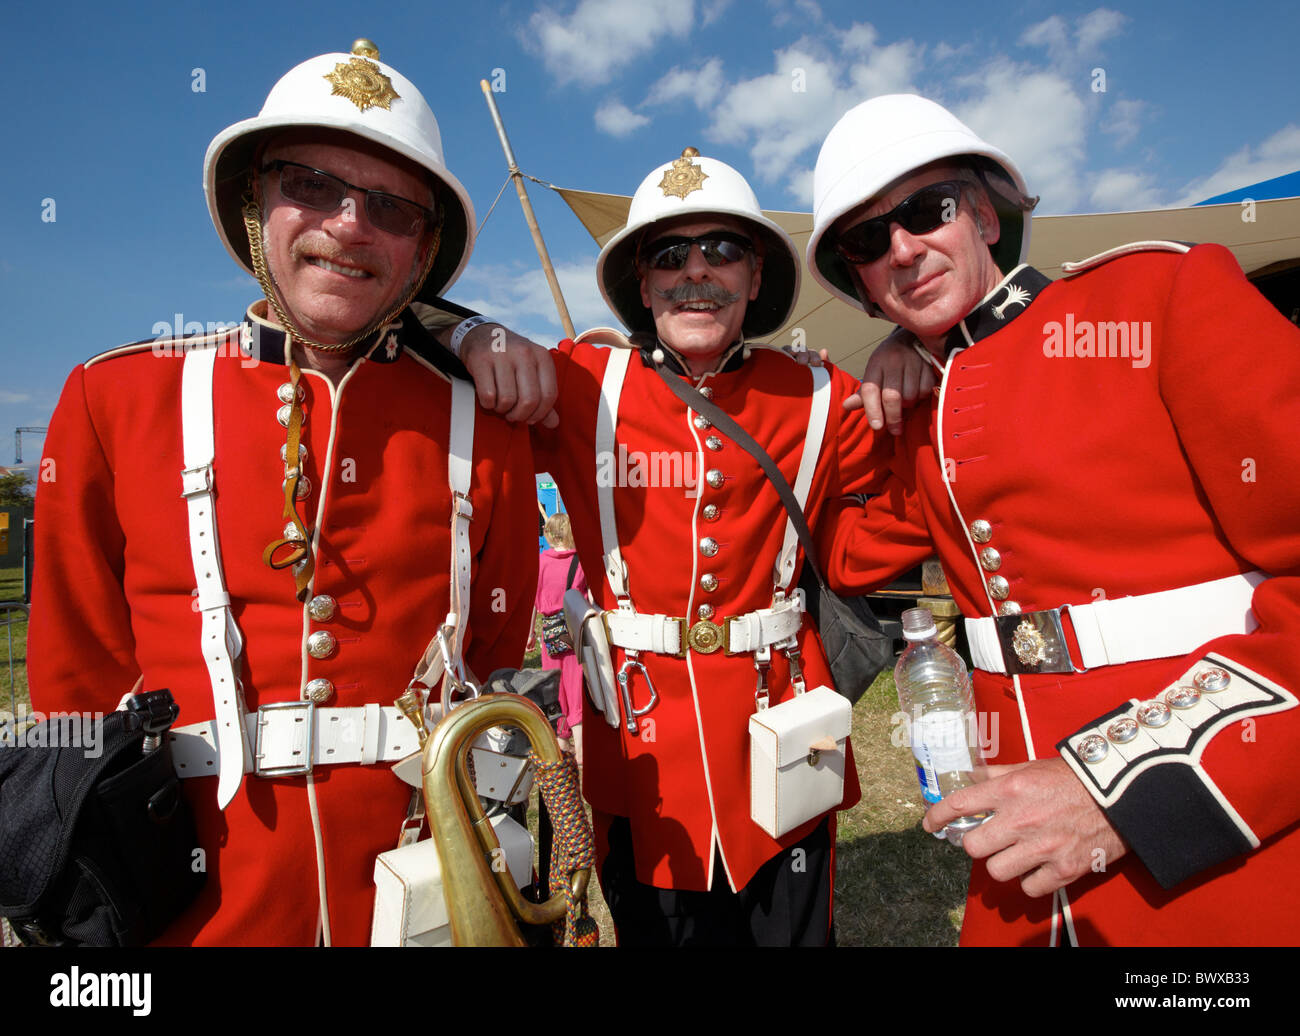 British Colonial Soldiers In Redcoats Glastonbury Festival Somerset UK Europe - Stock Image  sc 1 st  Alamy & British Colonial Dress Stock Photos u0026 British Colonial Dress Stock ...